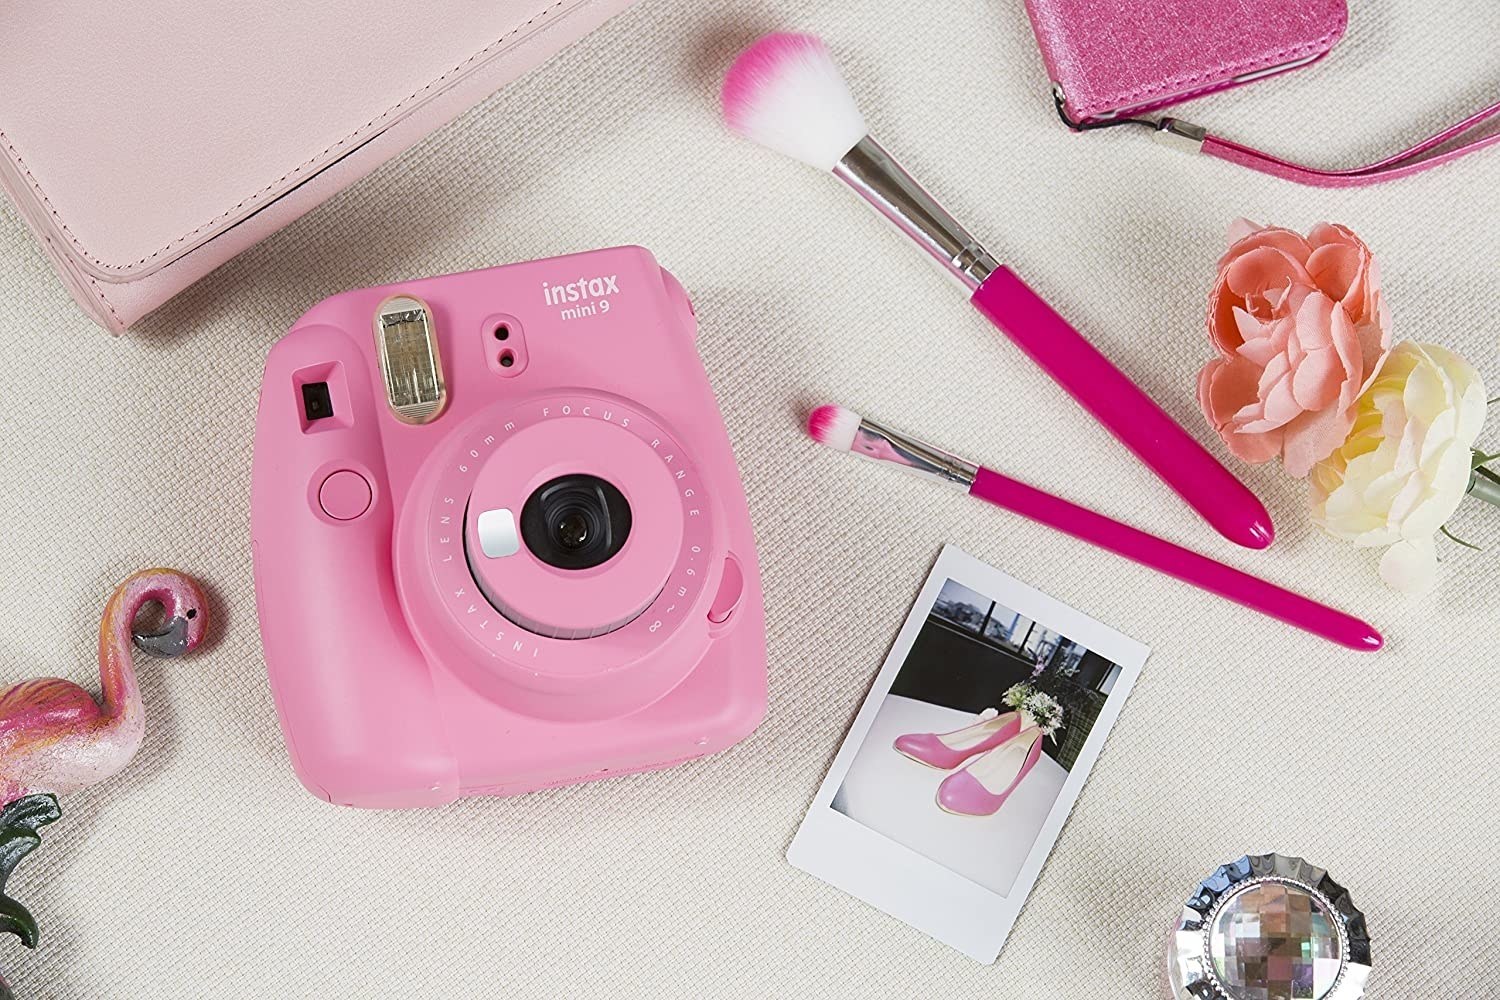 An instant camera on a table with makeup brushes and pictures